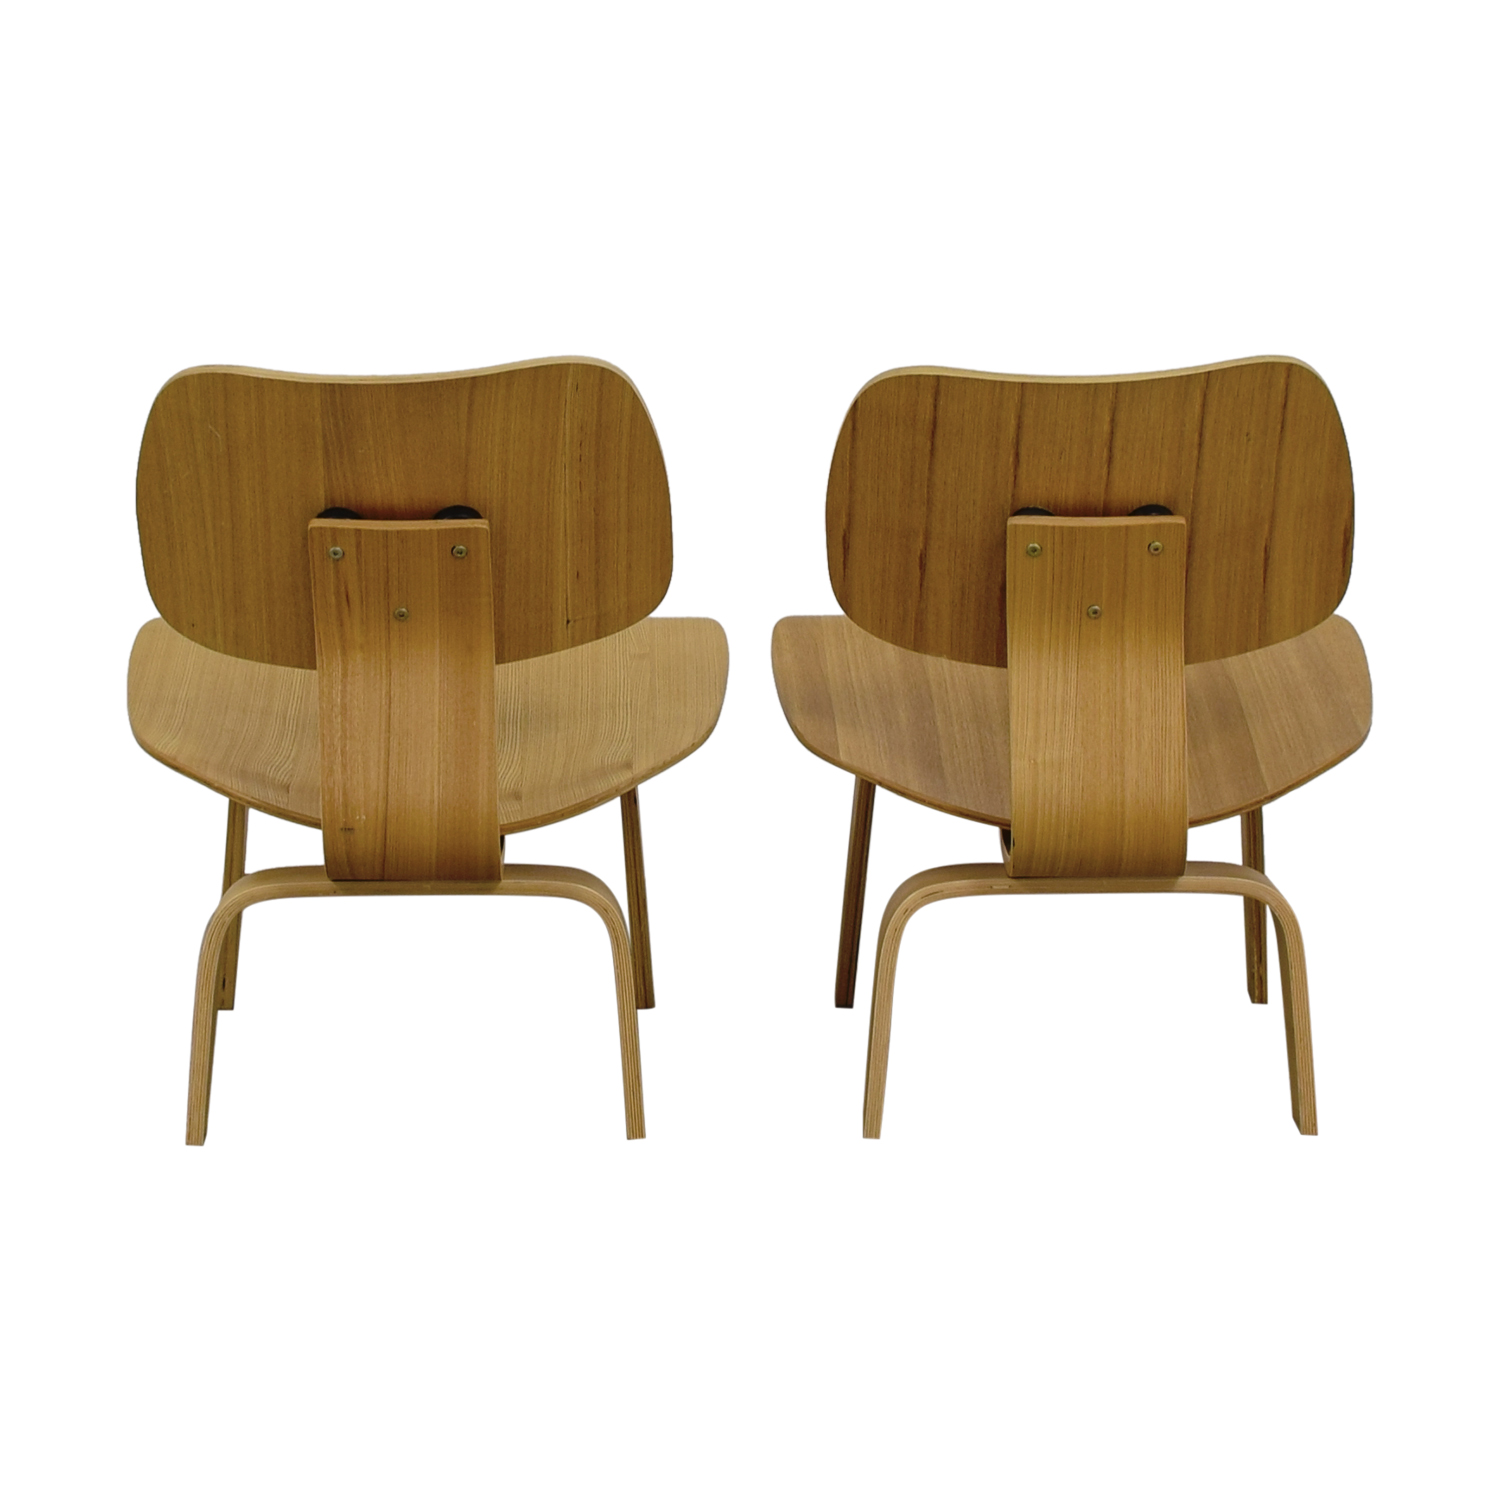 buy  Natural Molded Plywood Chairs online